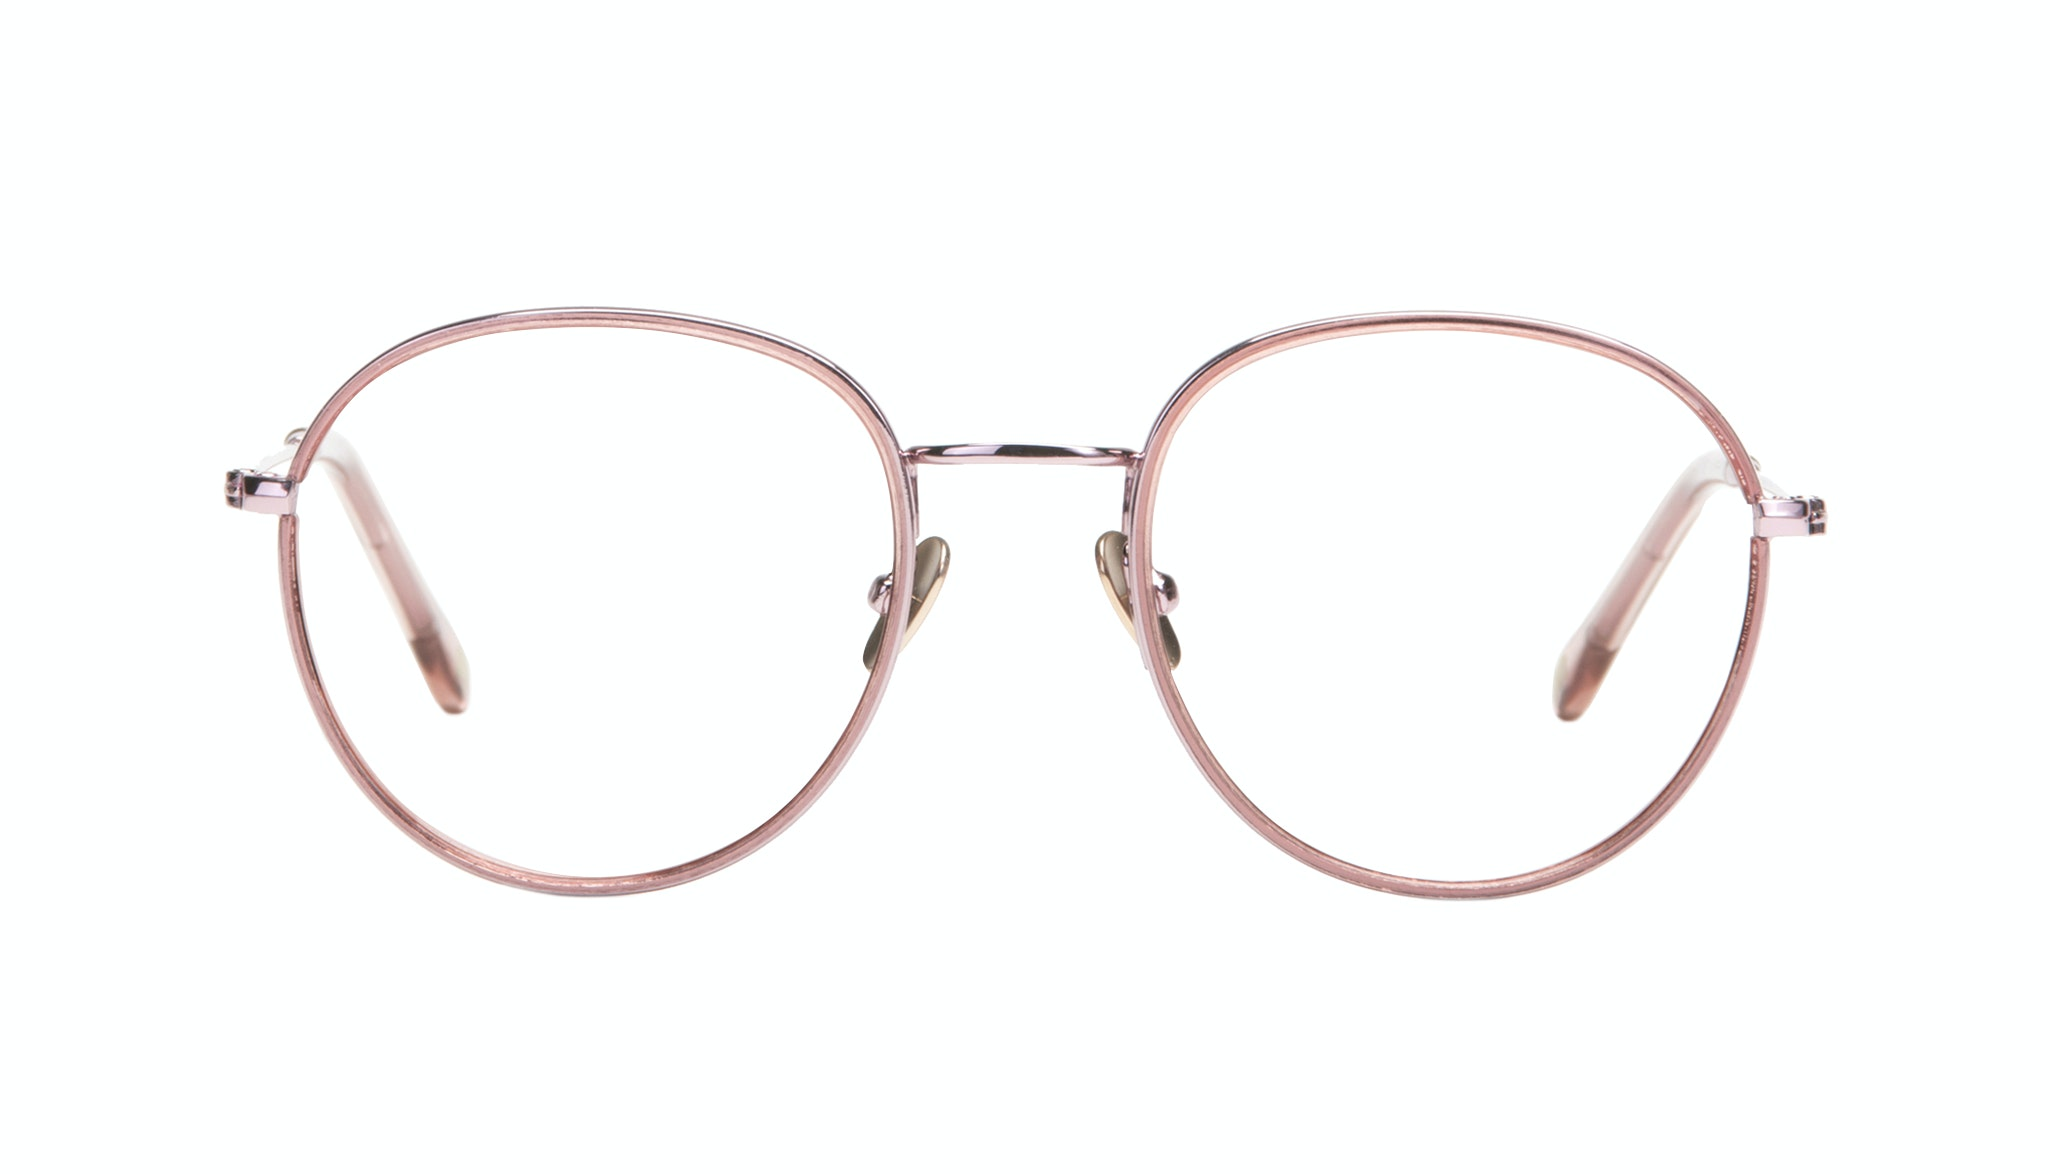 Affordable Fashion Glasses Aviator Round Eyeglasses Women Subrosa Romance Front